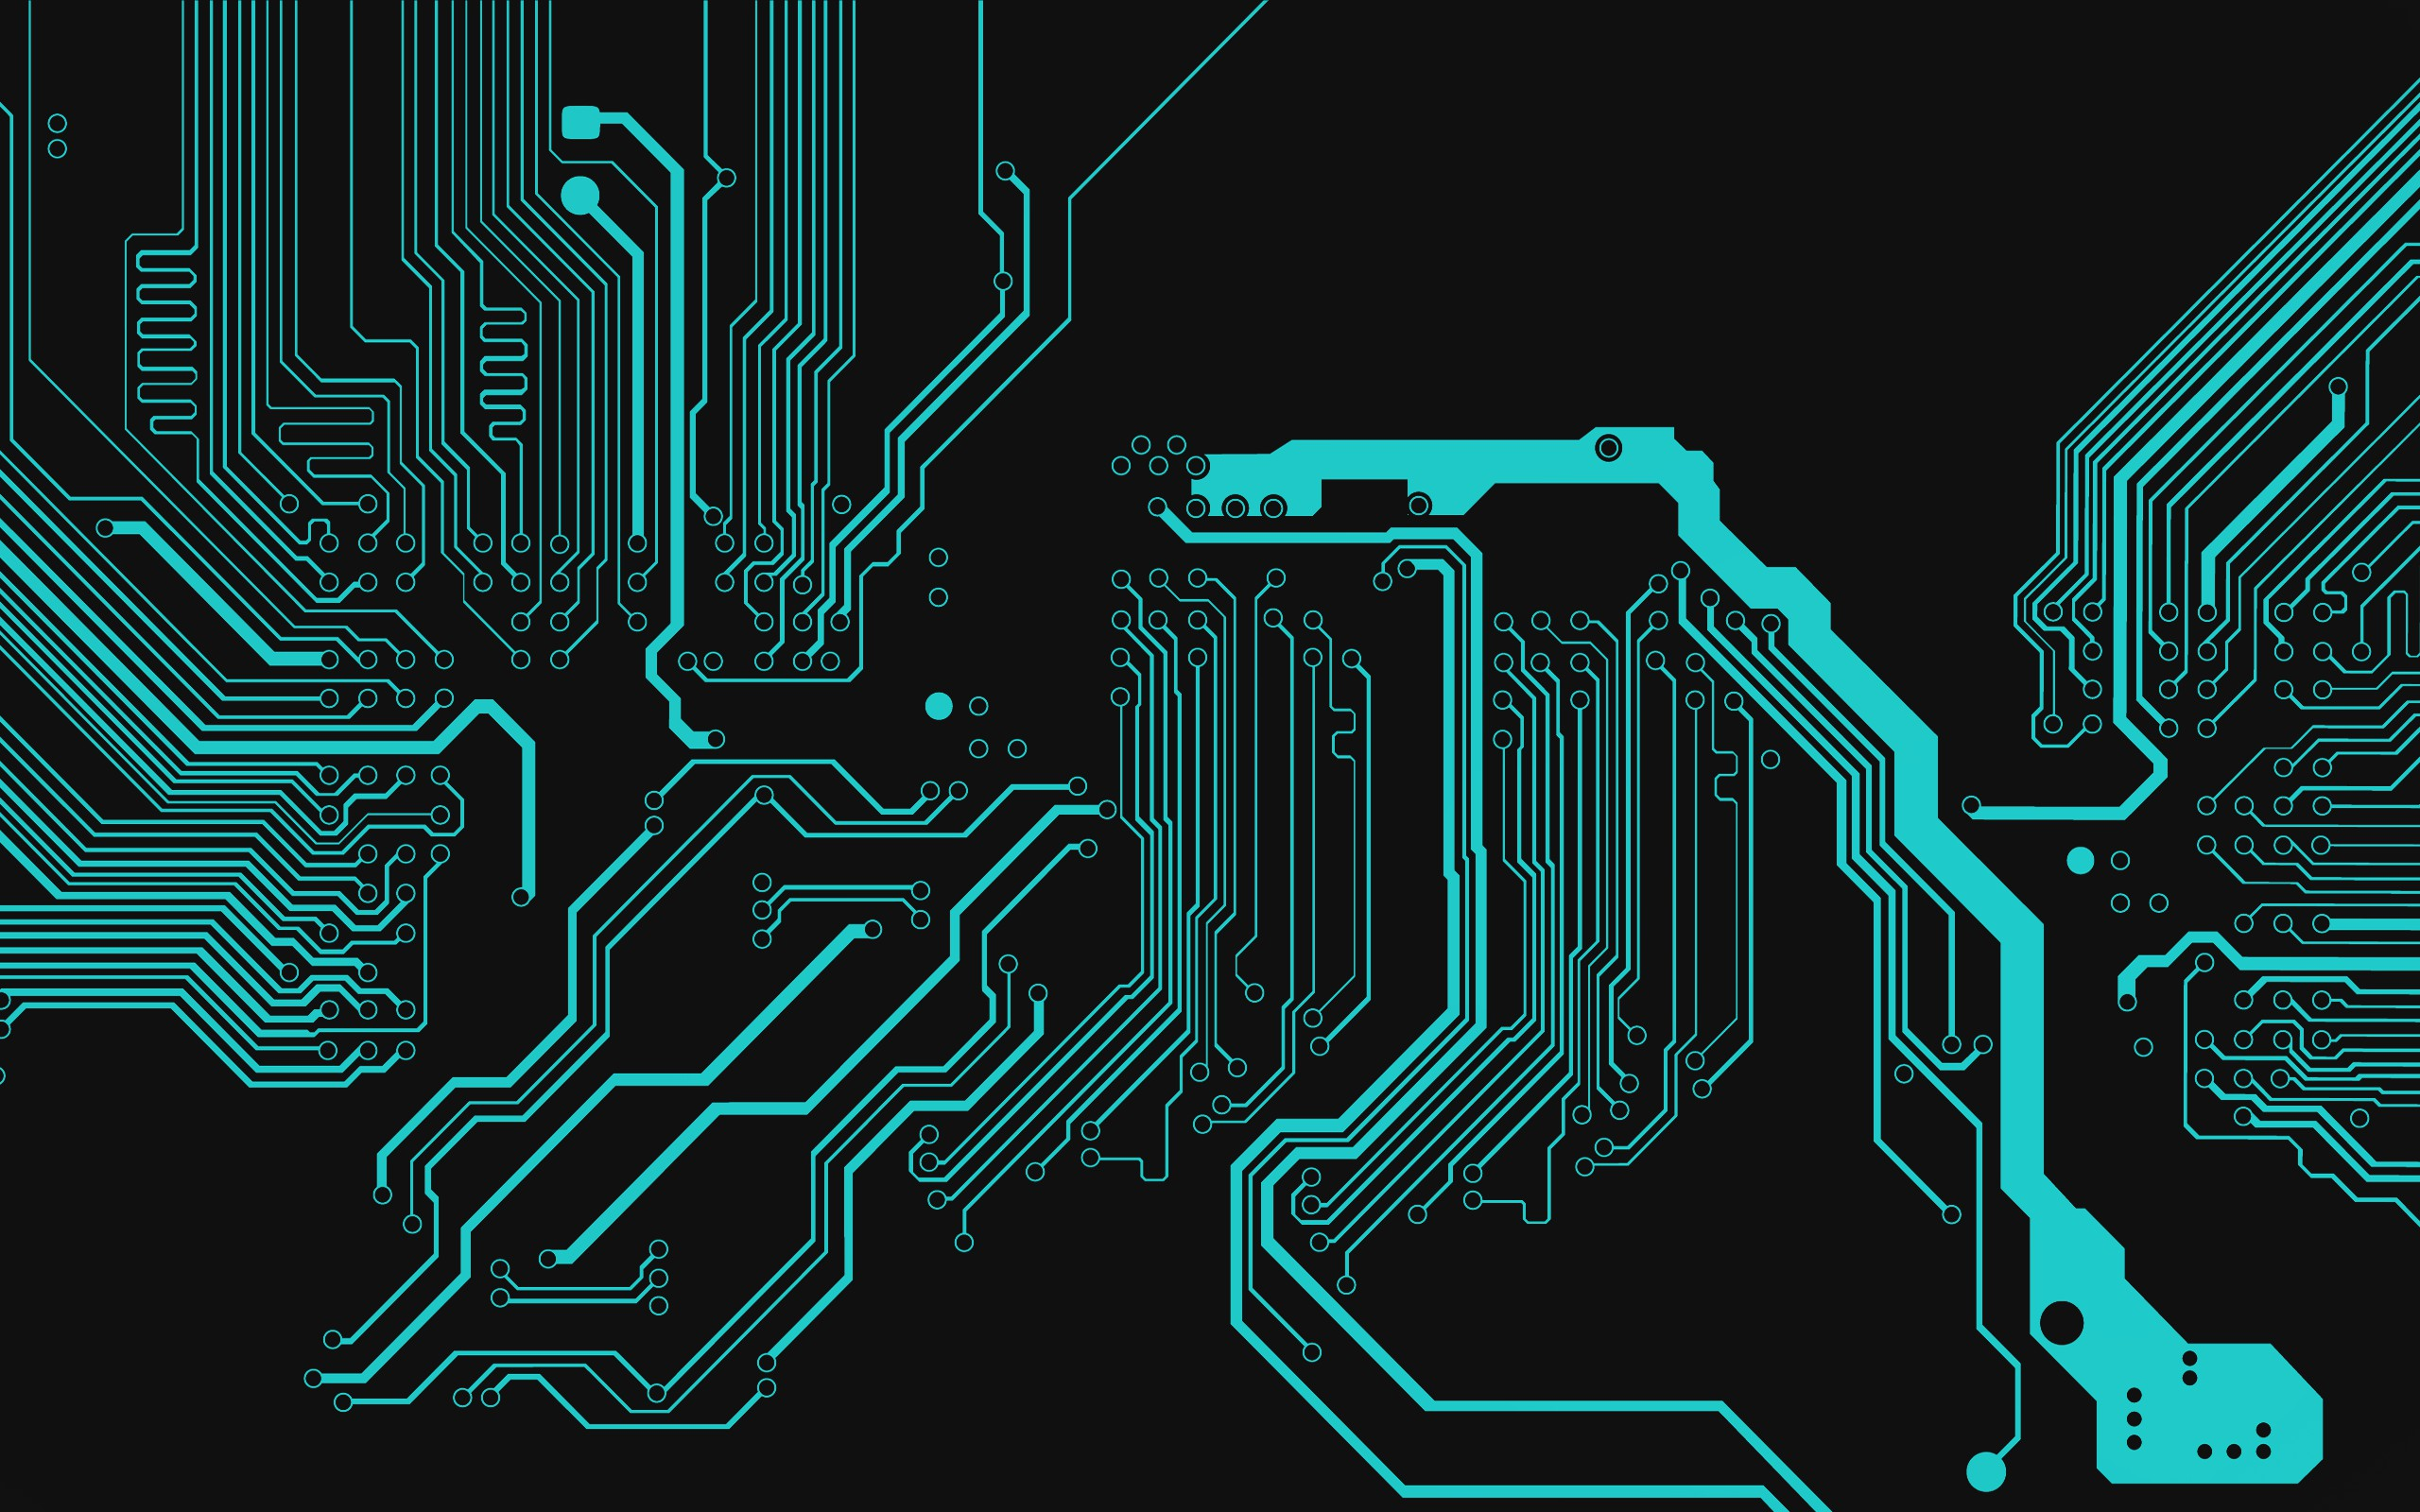 3d Circuits Computer Hd Wallpapers Download 2560x1600